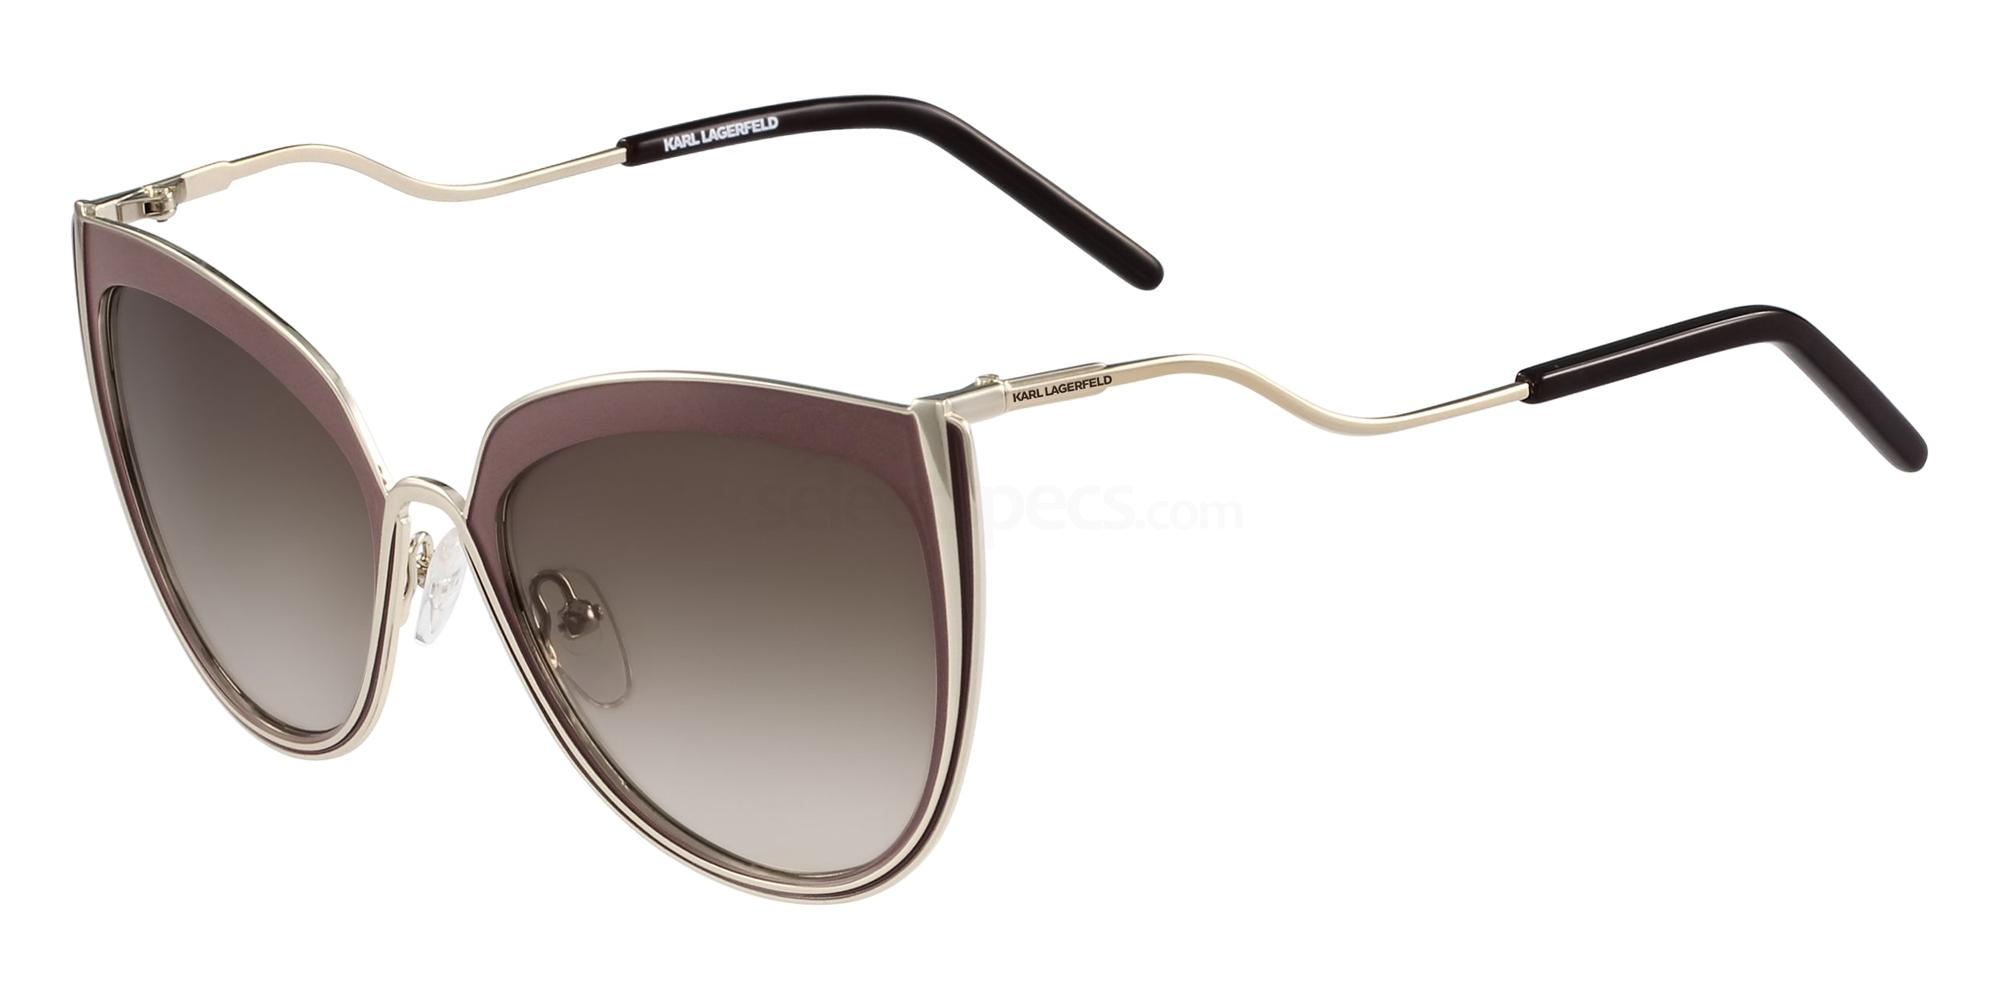 Gold touch sunglasses